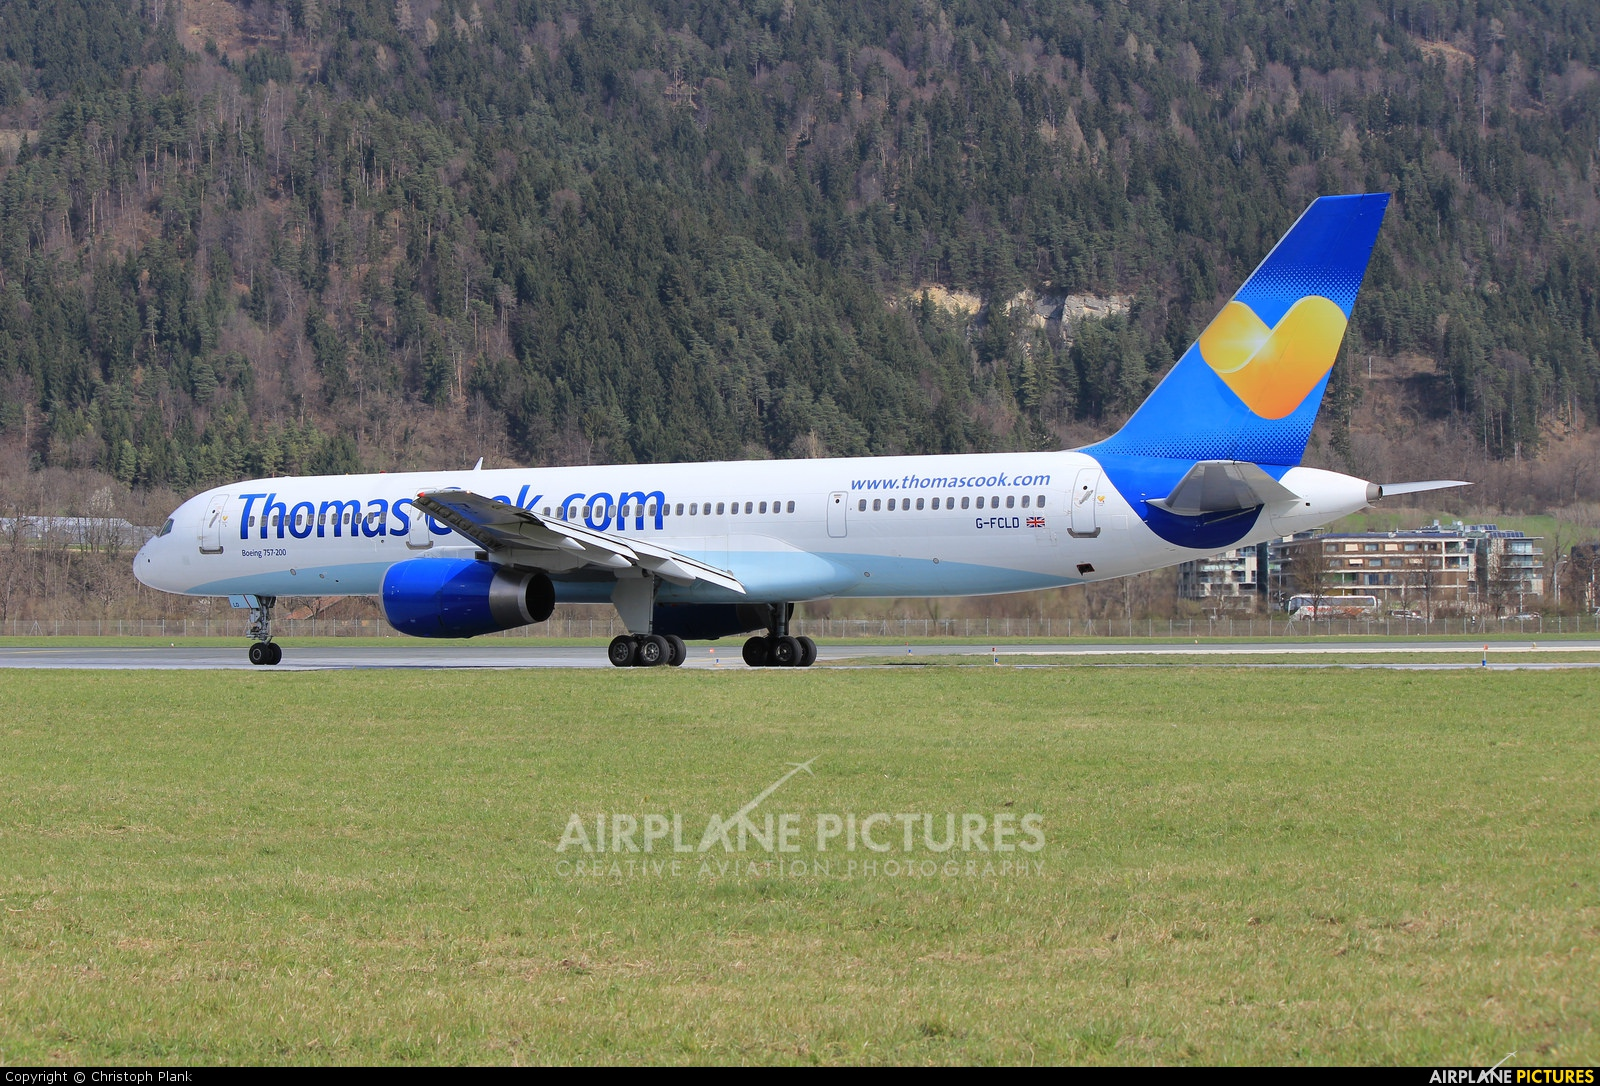 Thomas Cook G-FCLD aircraft at Innsbruck